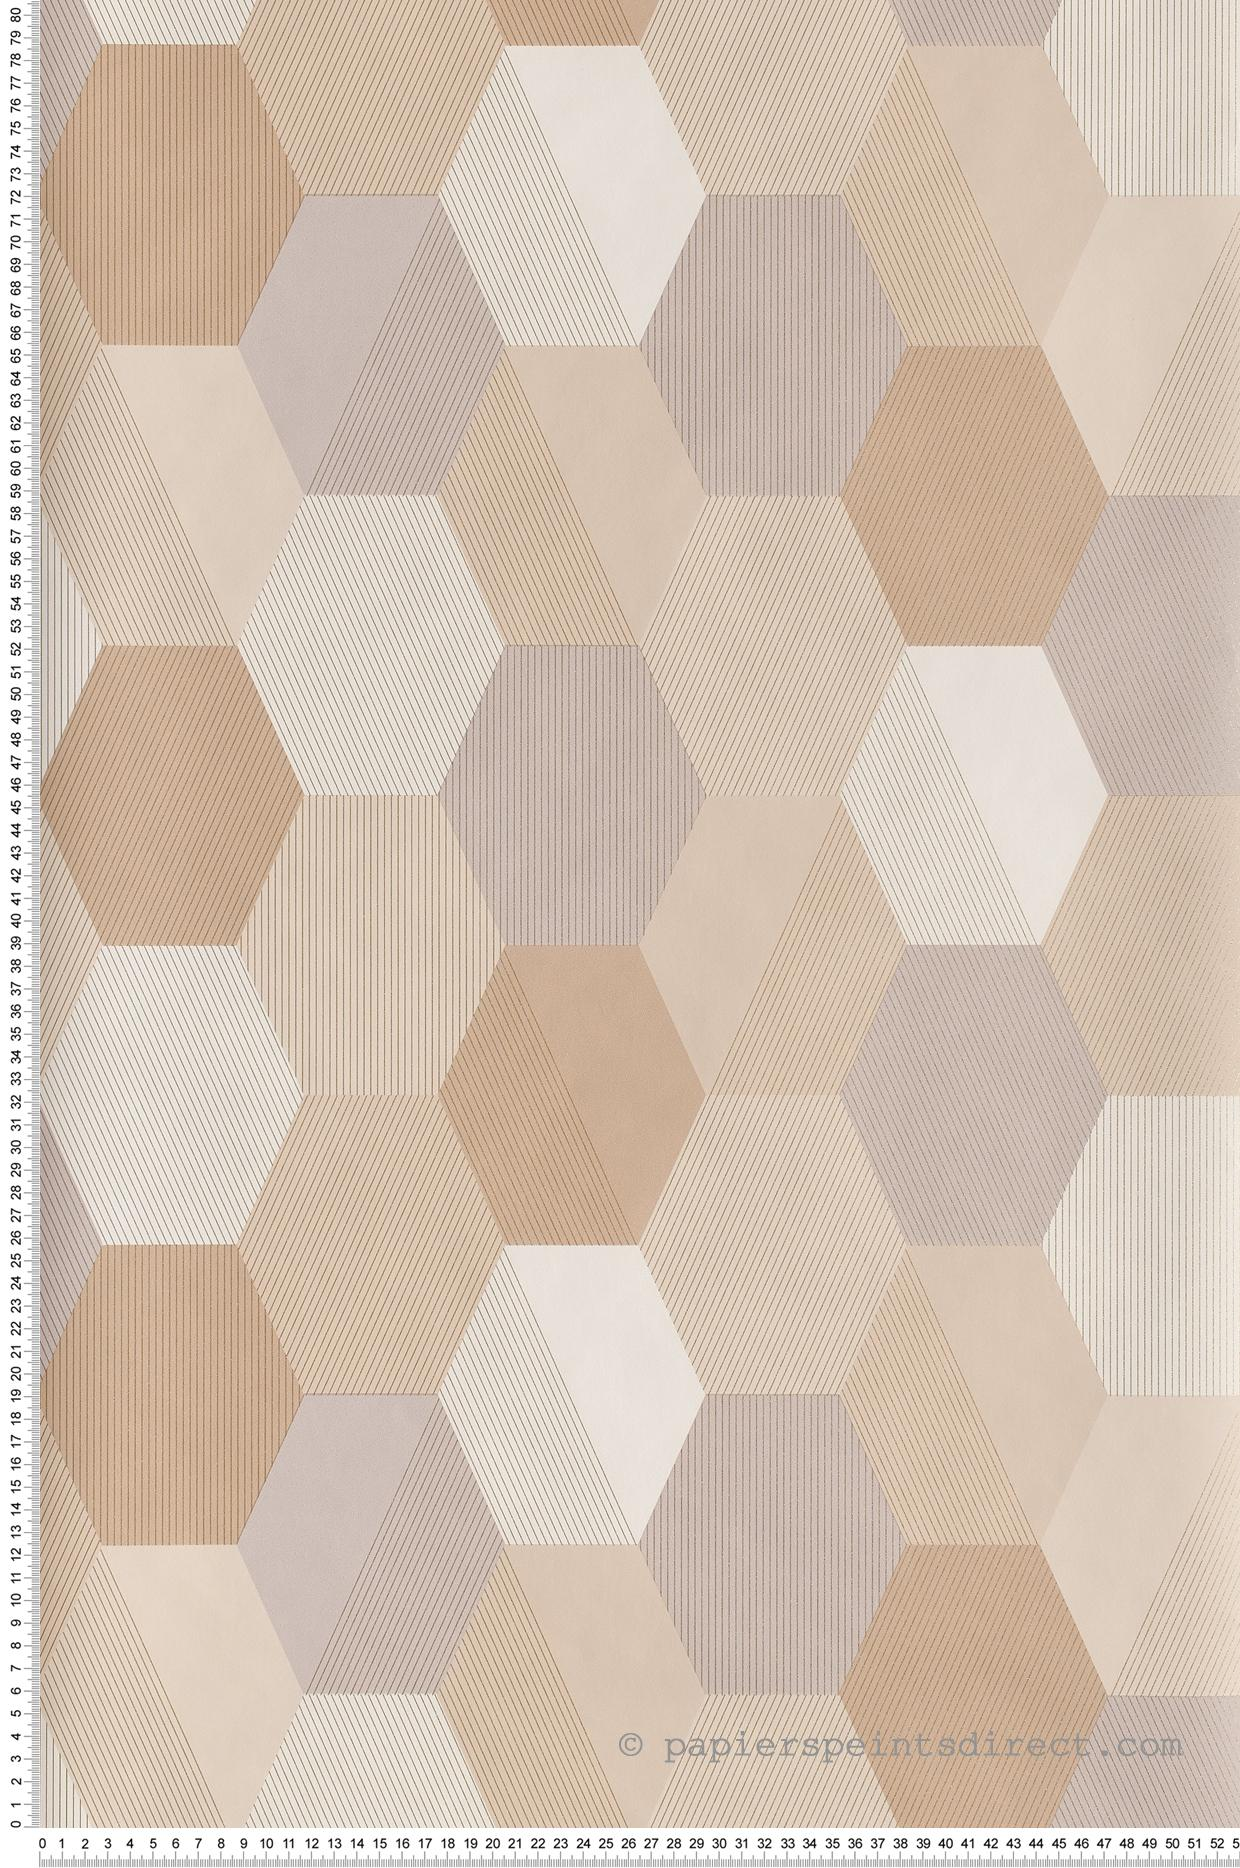 Papier peint Hexagon beige gris - Spaces de Casélio | Réf. SPA100101019